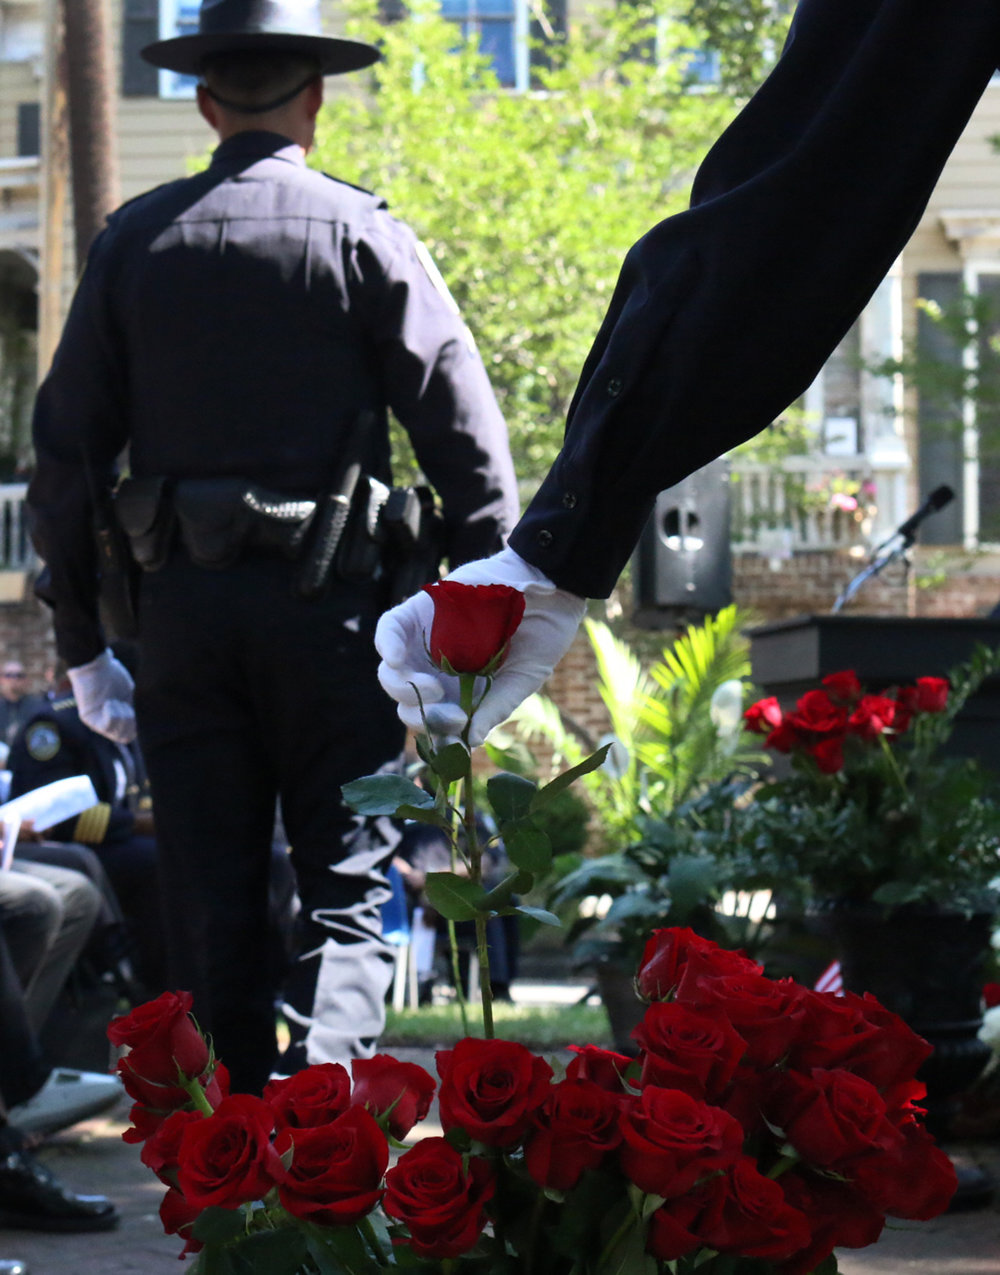 A police officer grabs a rose to add to the Fallen Officer Memorial in front of Savannah-Chatham police headquarters May 11, 2016, during a ceremony honoring law enforcement officers who died in the line of duty.  (Dash Coleman/Savannah Morning News)